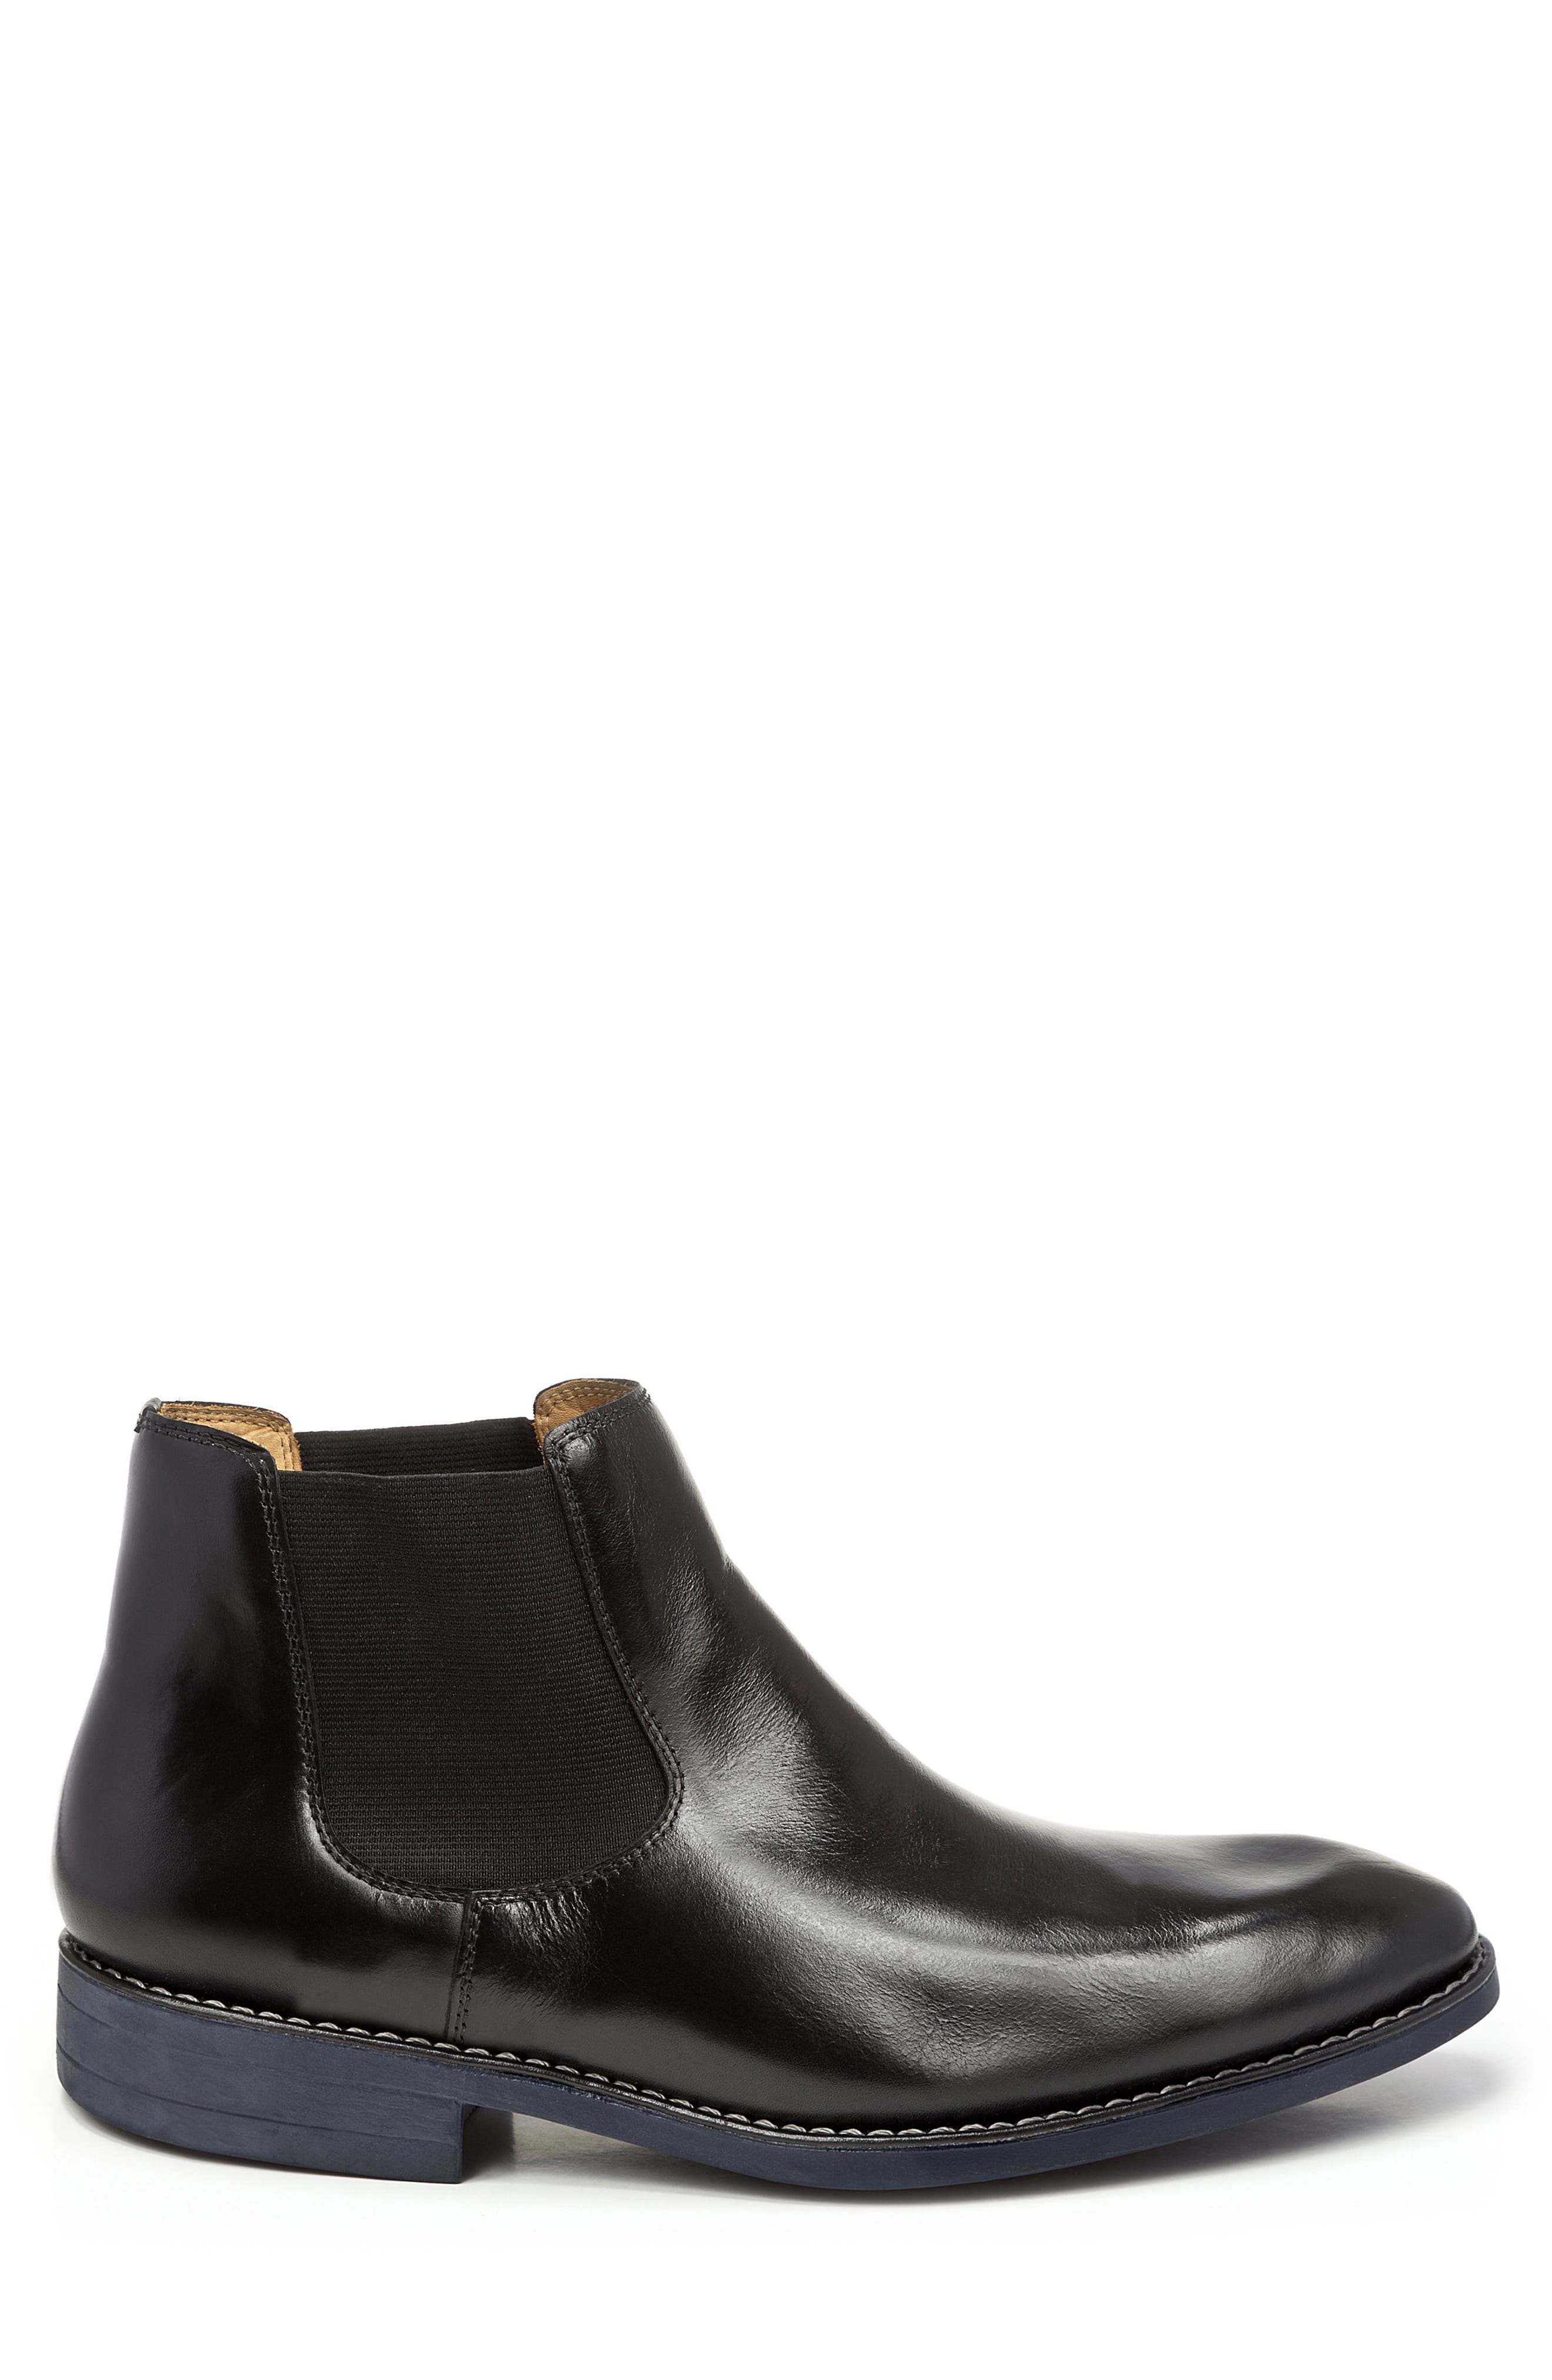 Marcus Chelsea Boot,                             Alternate thumbnail 3, color,                             BLACK LEATHER